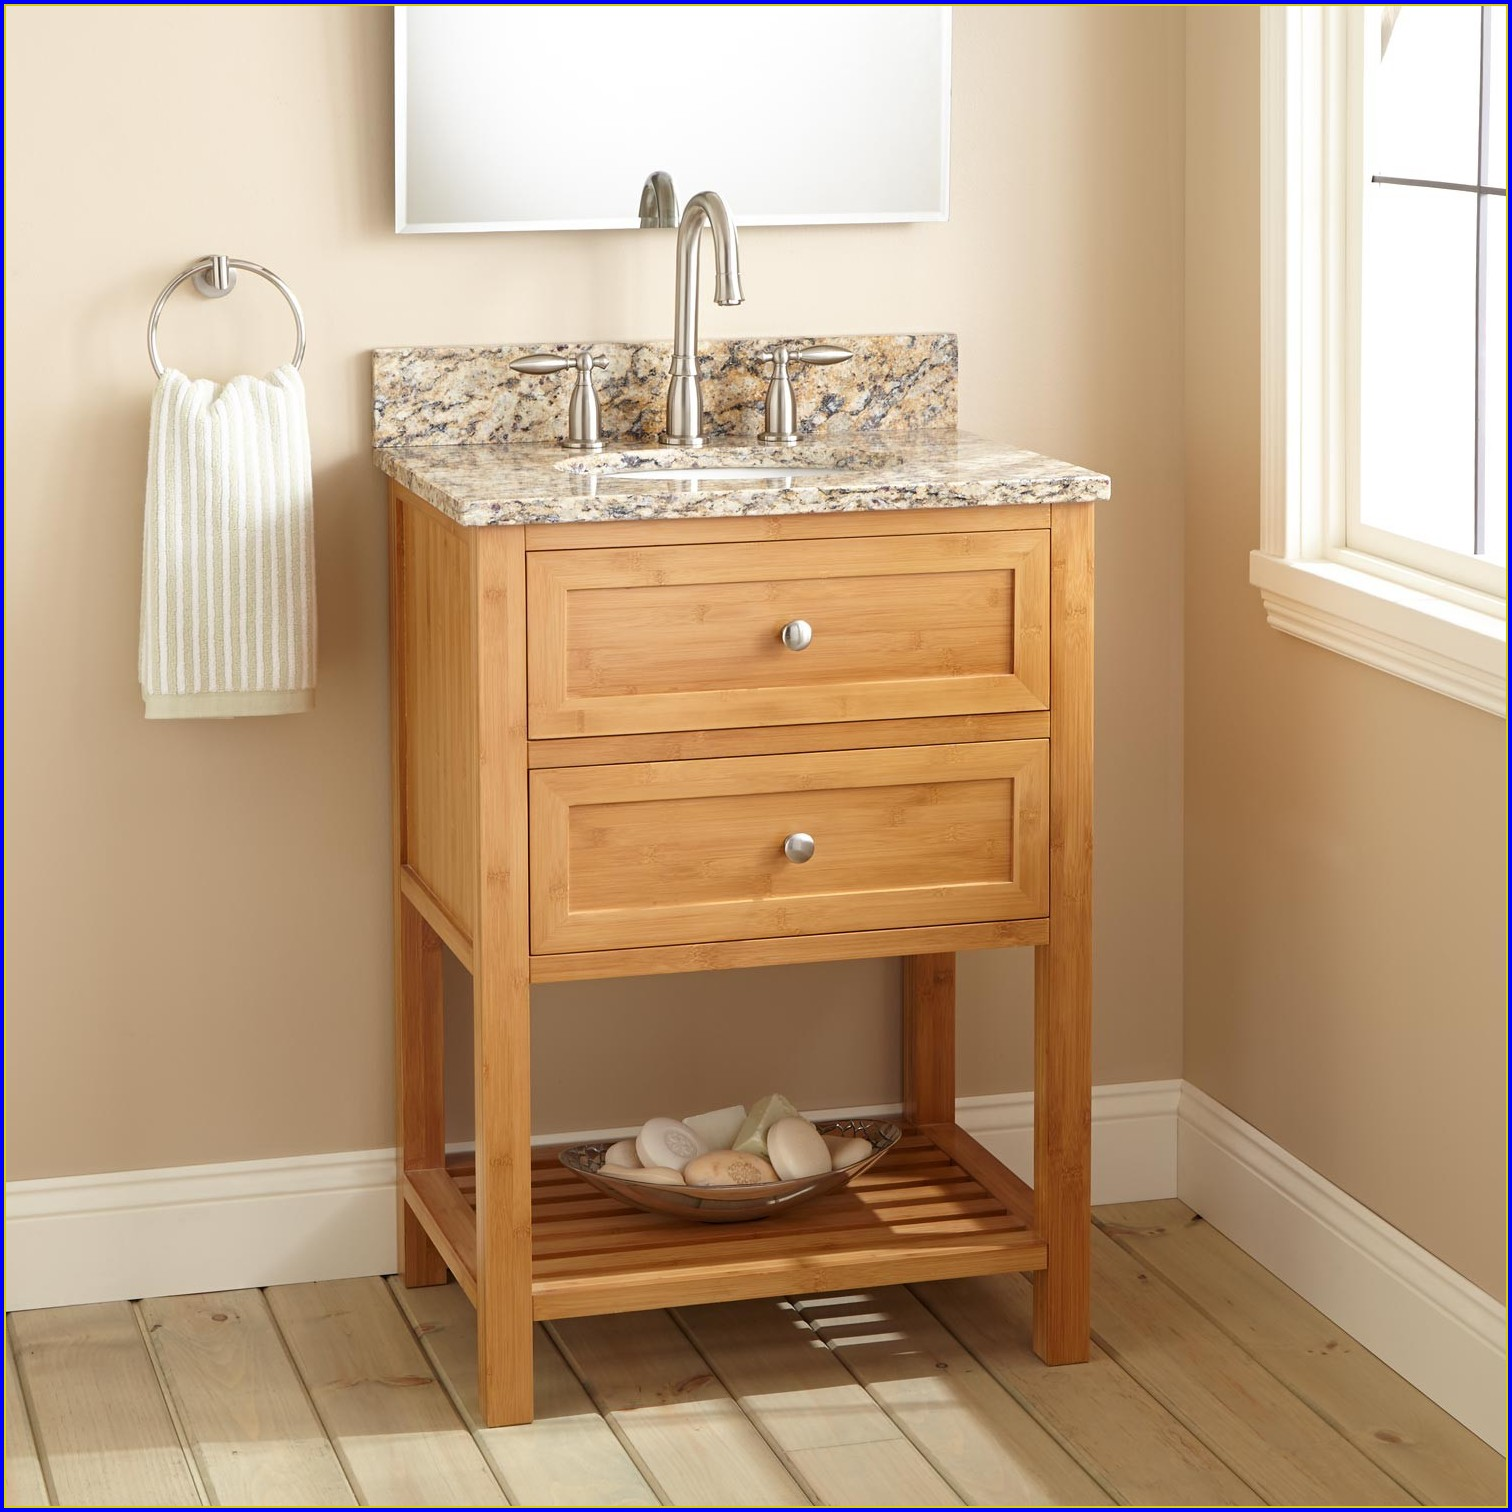 Windsor Narrow Depth Bathroom Vanity